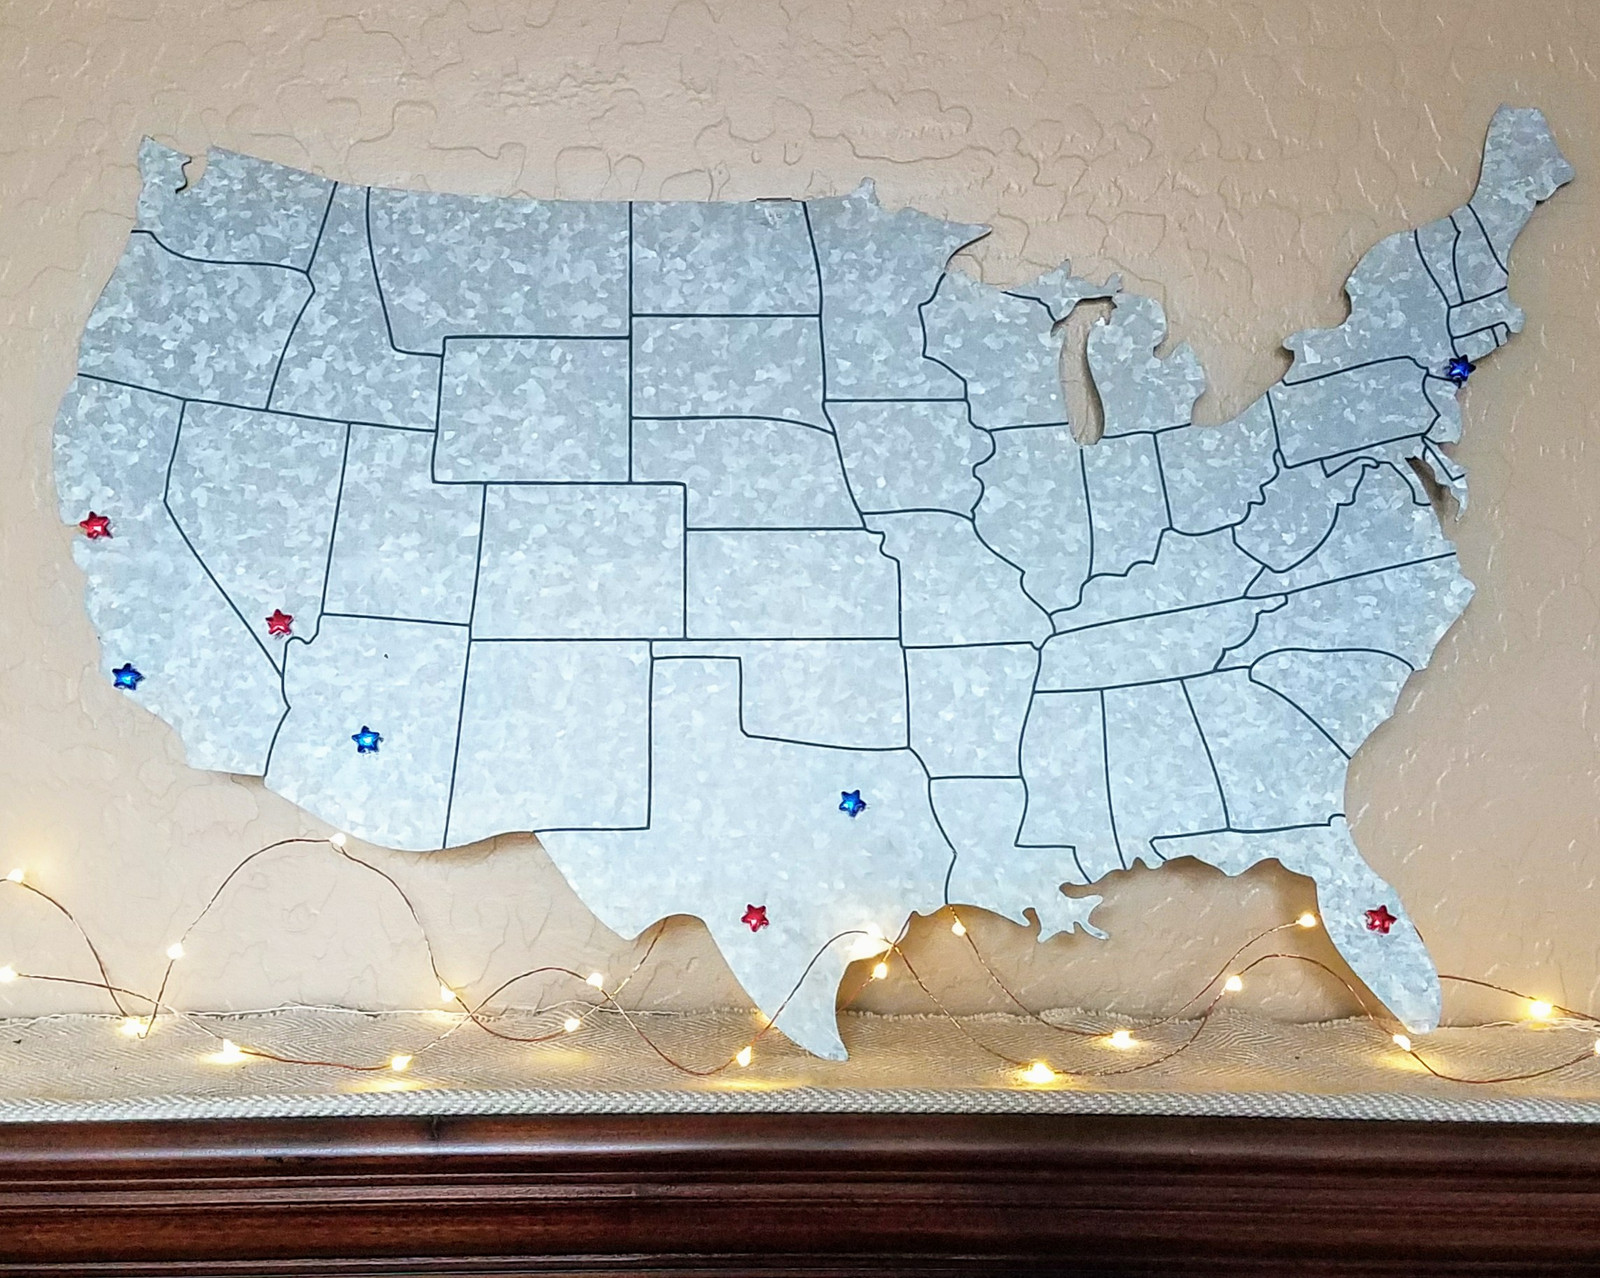 Metallic US Map Handmade Gifts In Phoenix United States With - Phoenix us map